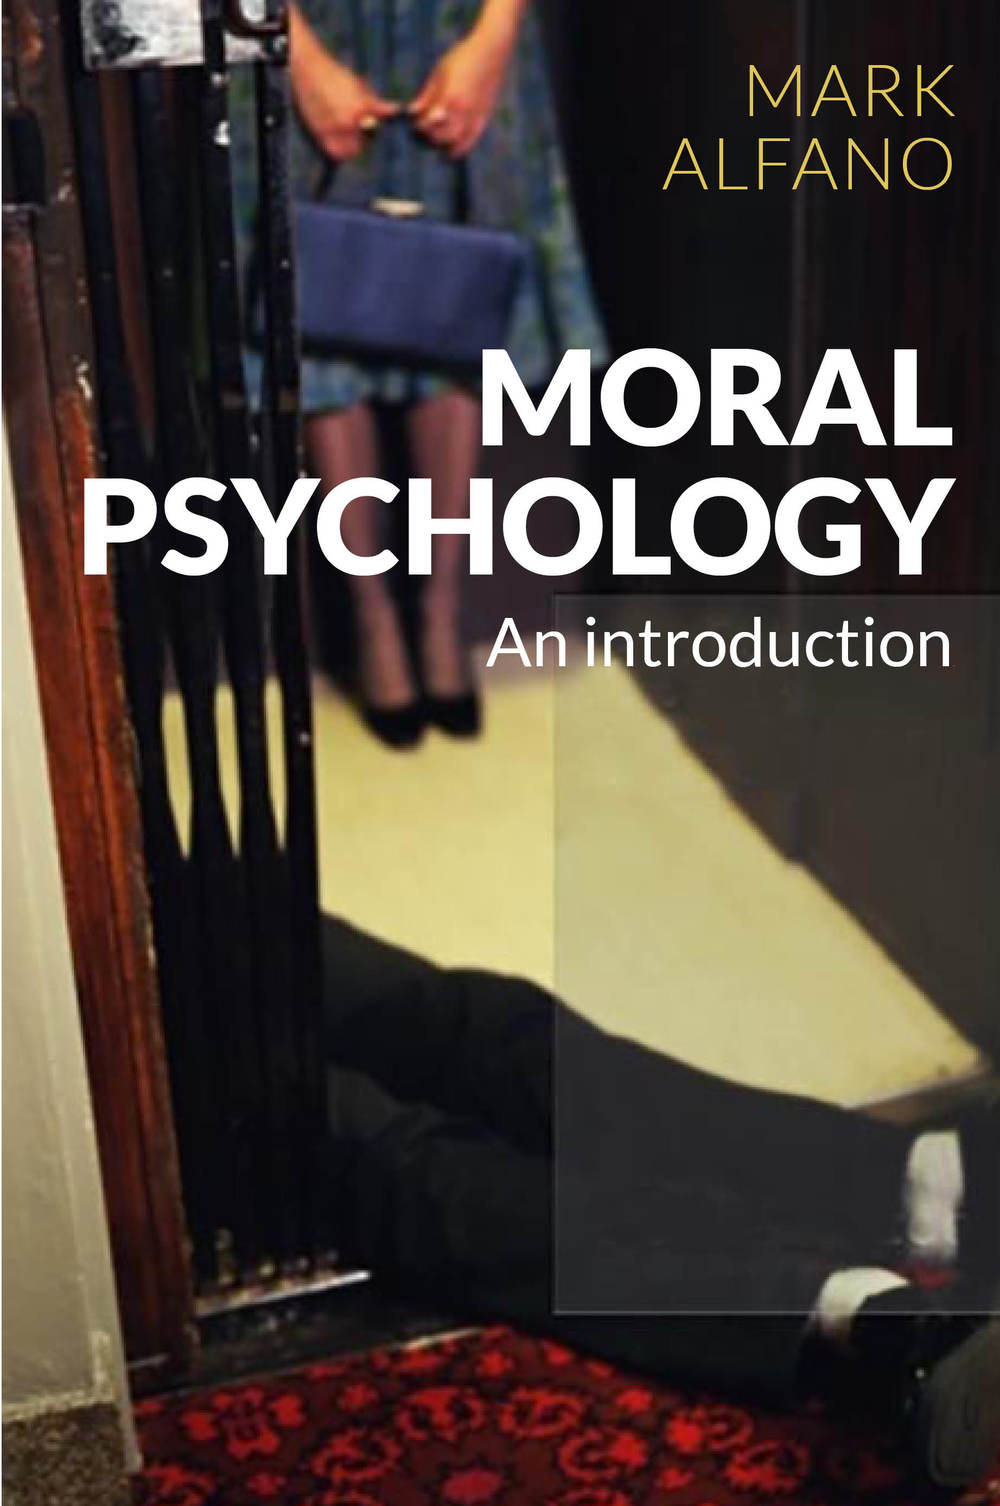 moral psychology cover